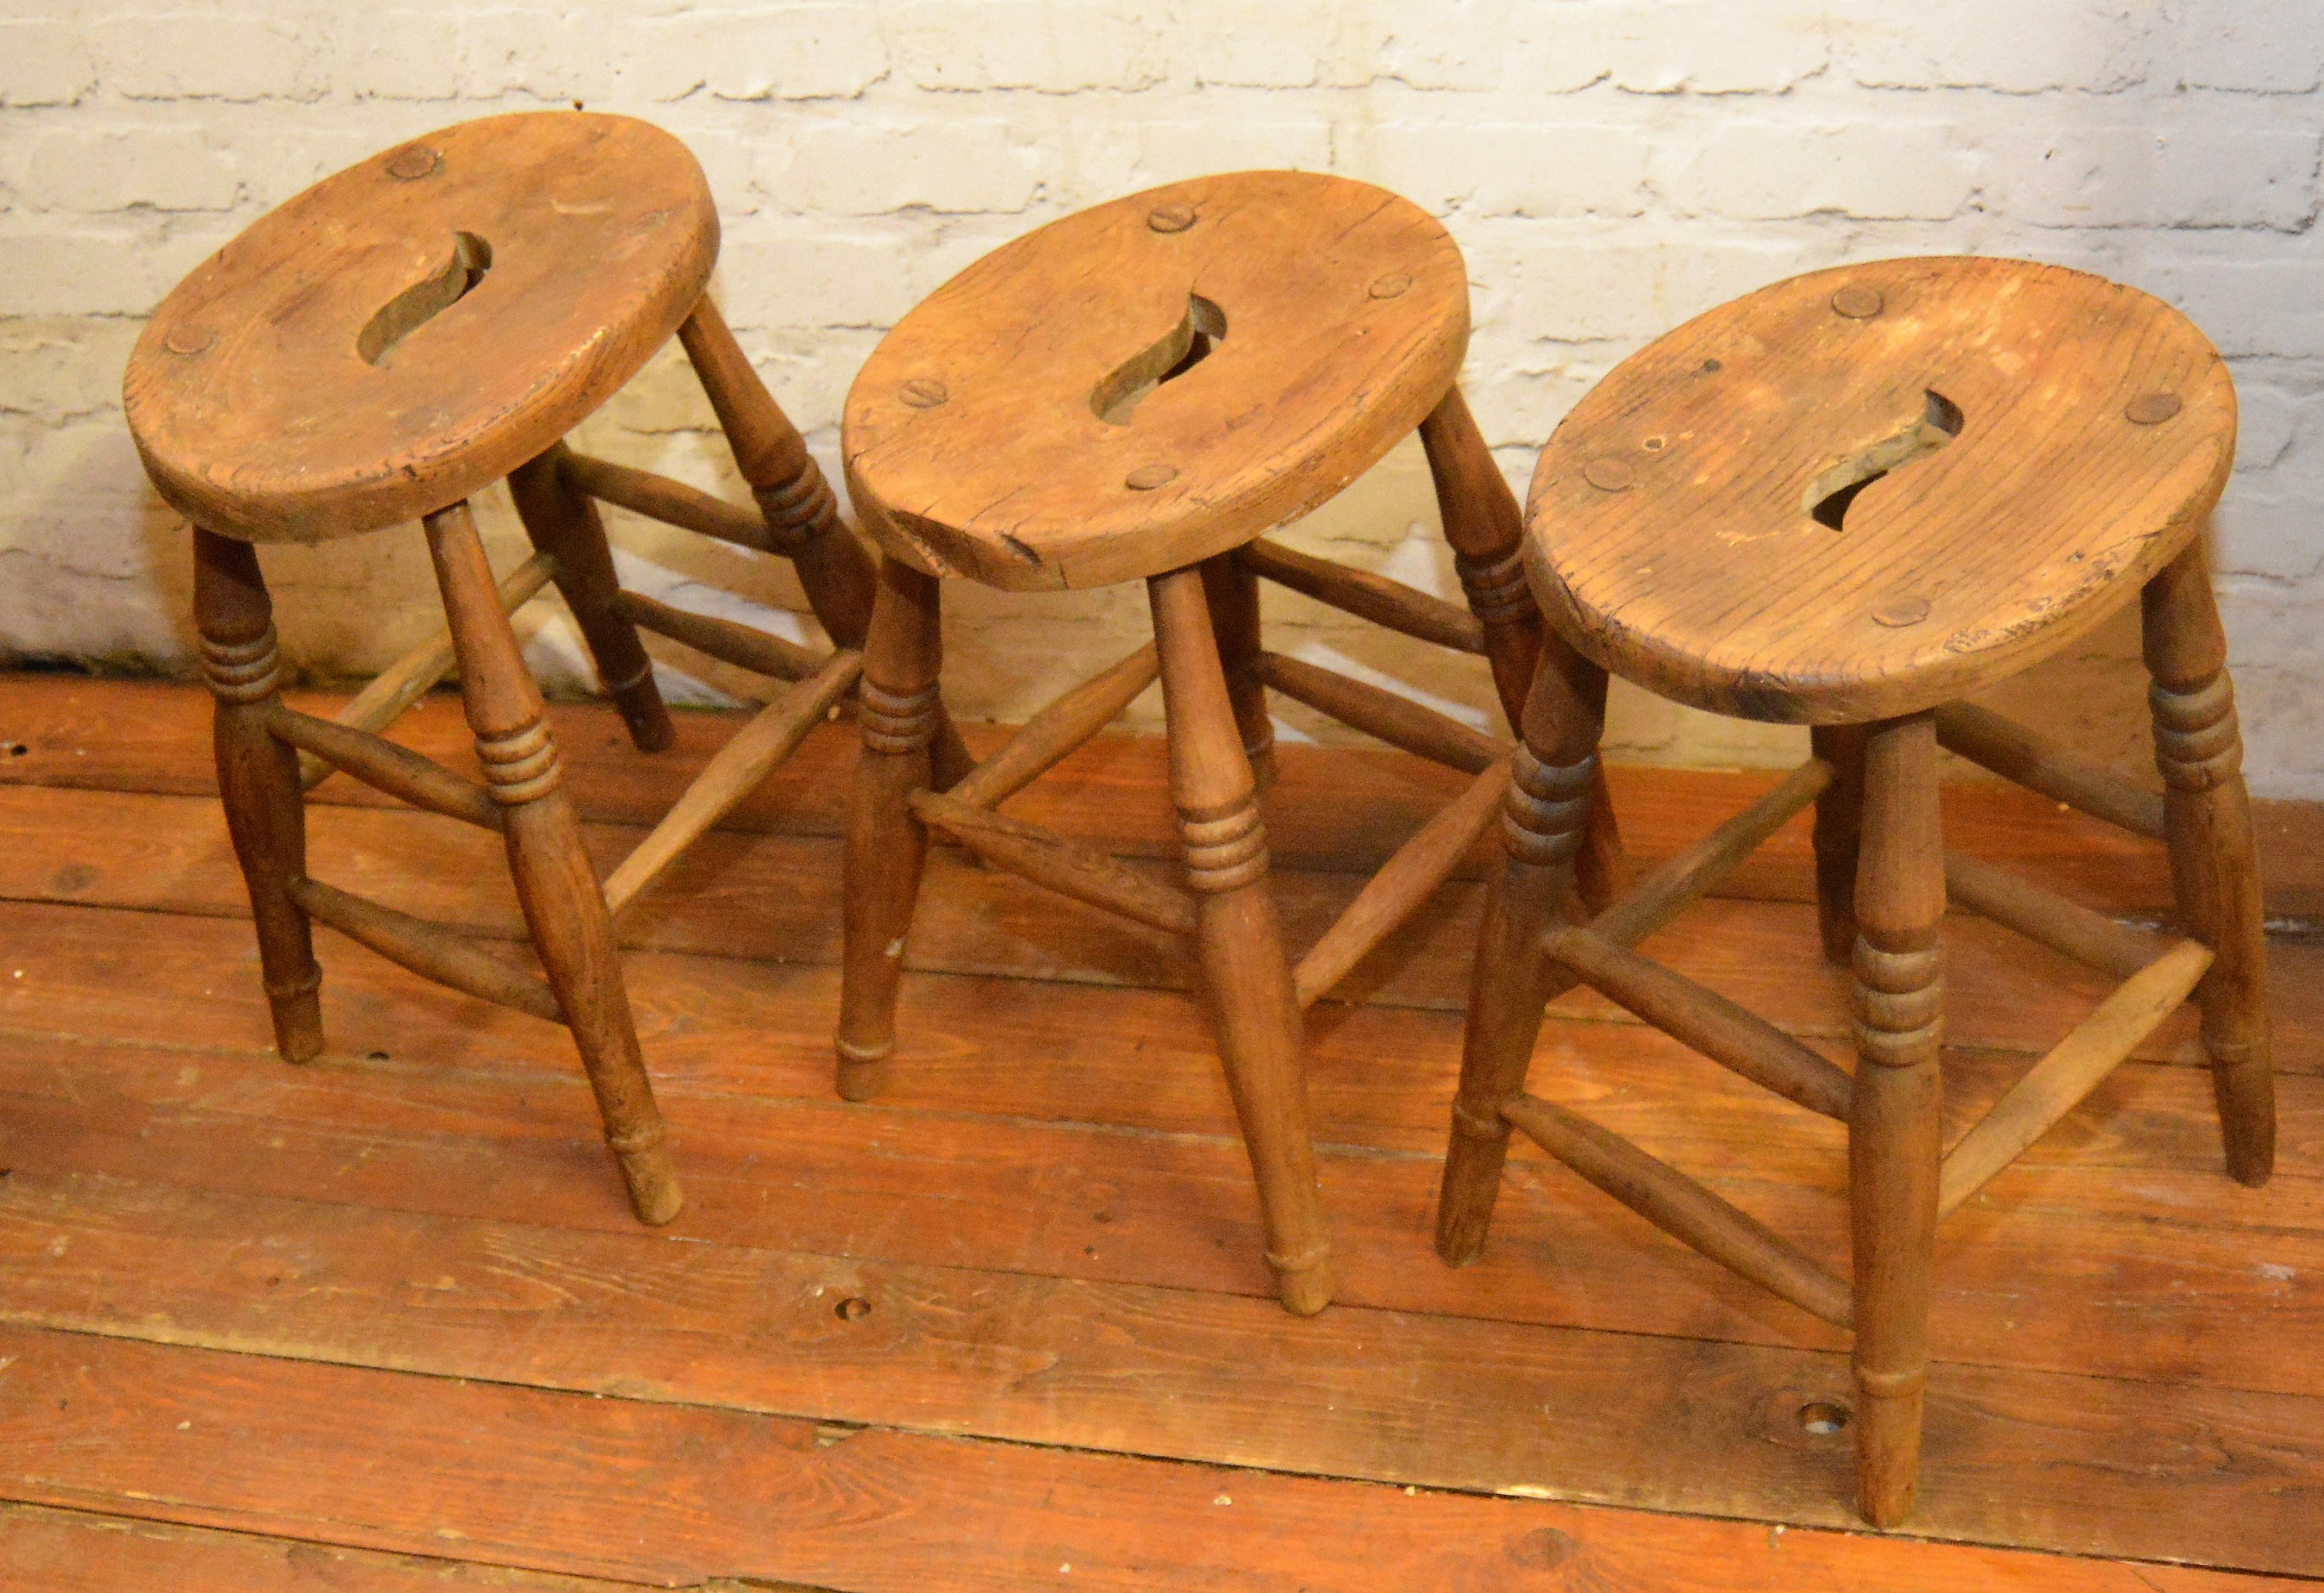 Enjoyable 10 Available Victorian Stools Antique Industrial Kitchen Retro Seating Cafe Wooden School Old Ocoug Best Dining Table And Chair Ideas Images Ocougorg